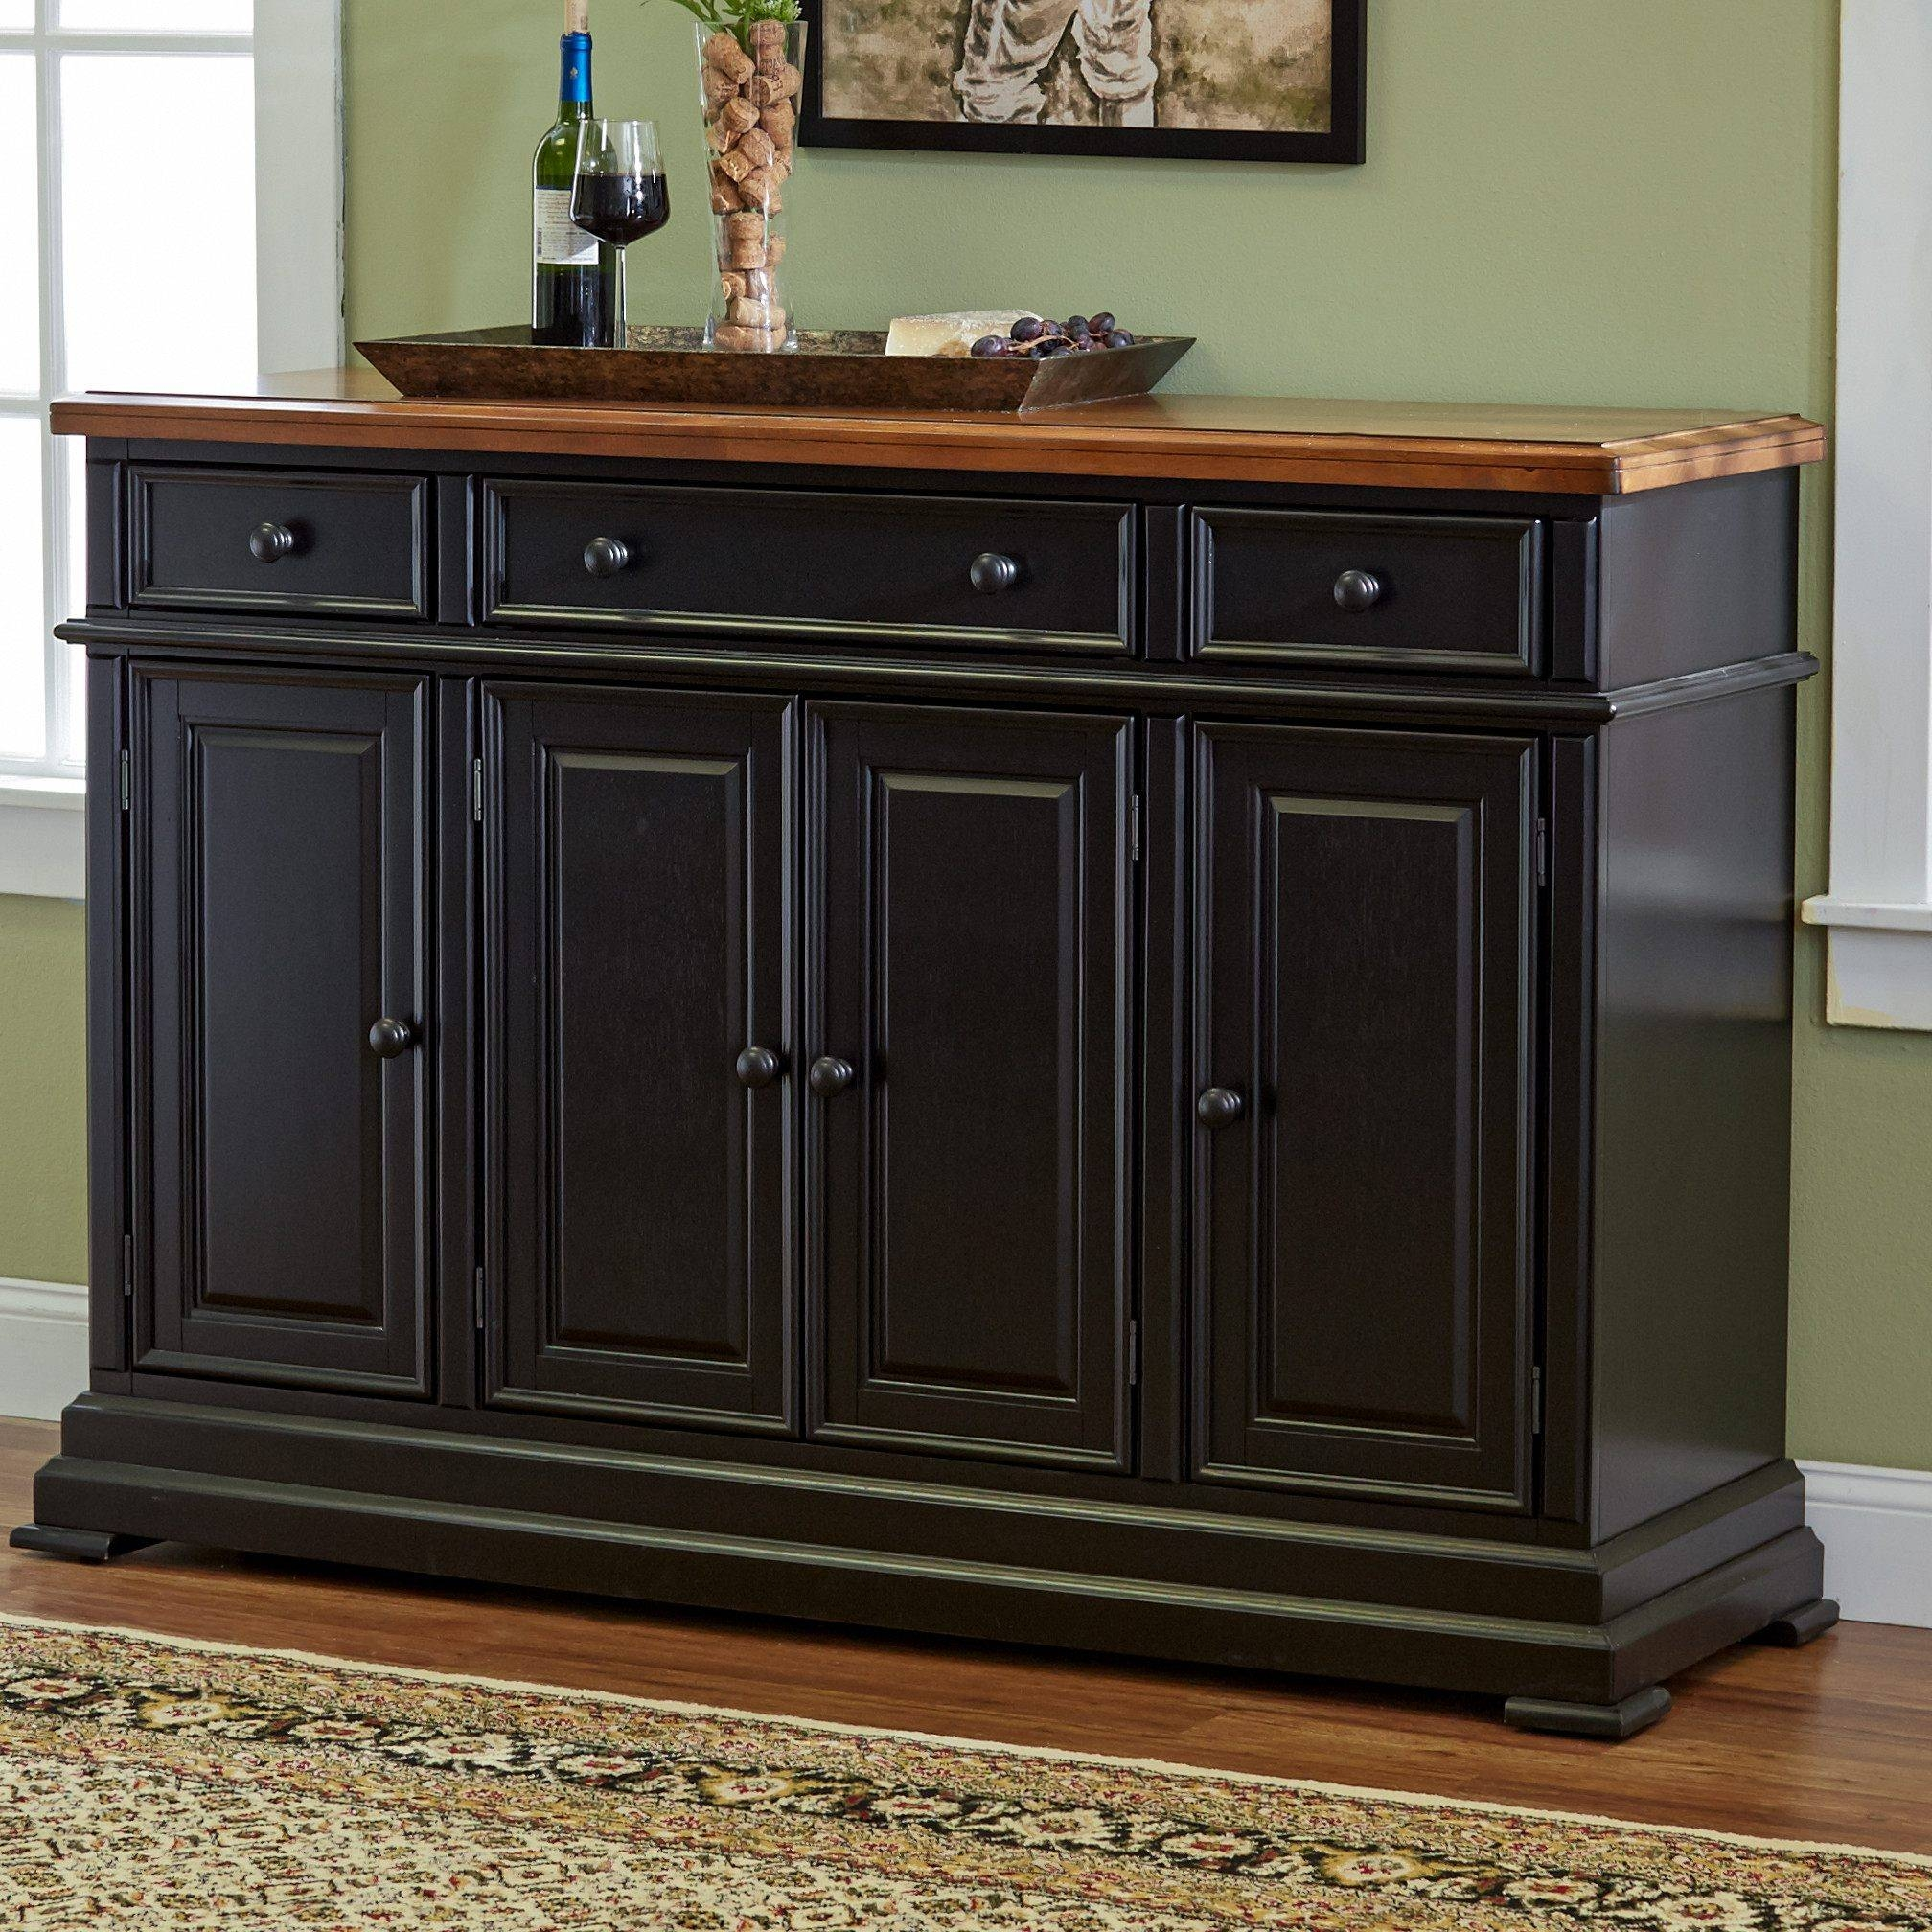 Best of black dining room sideboards